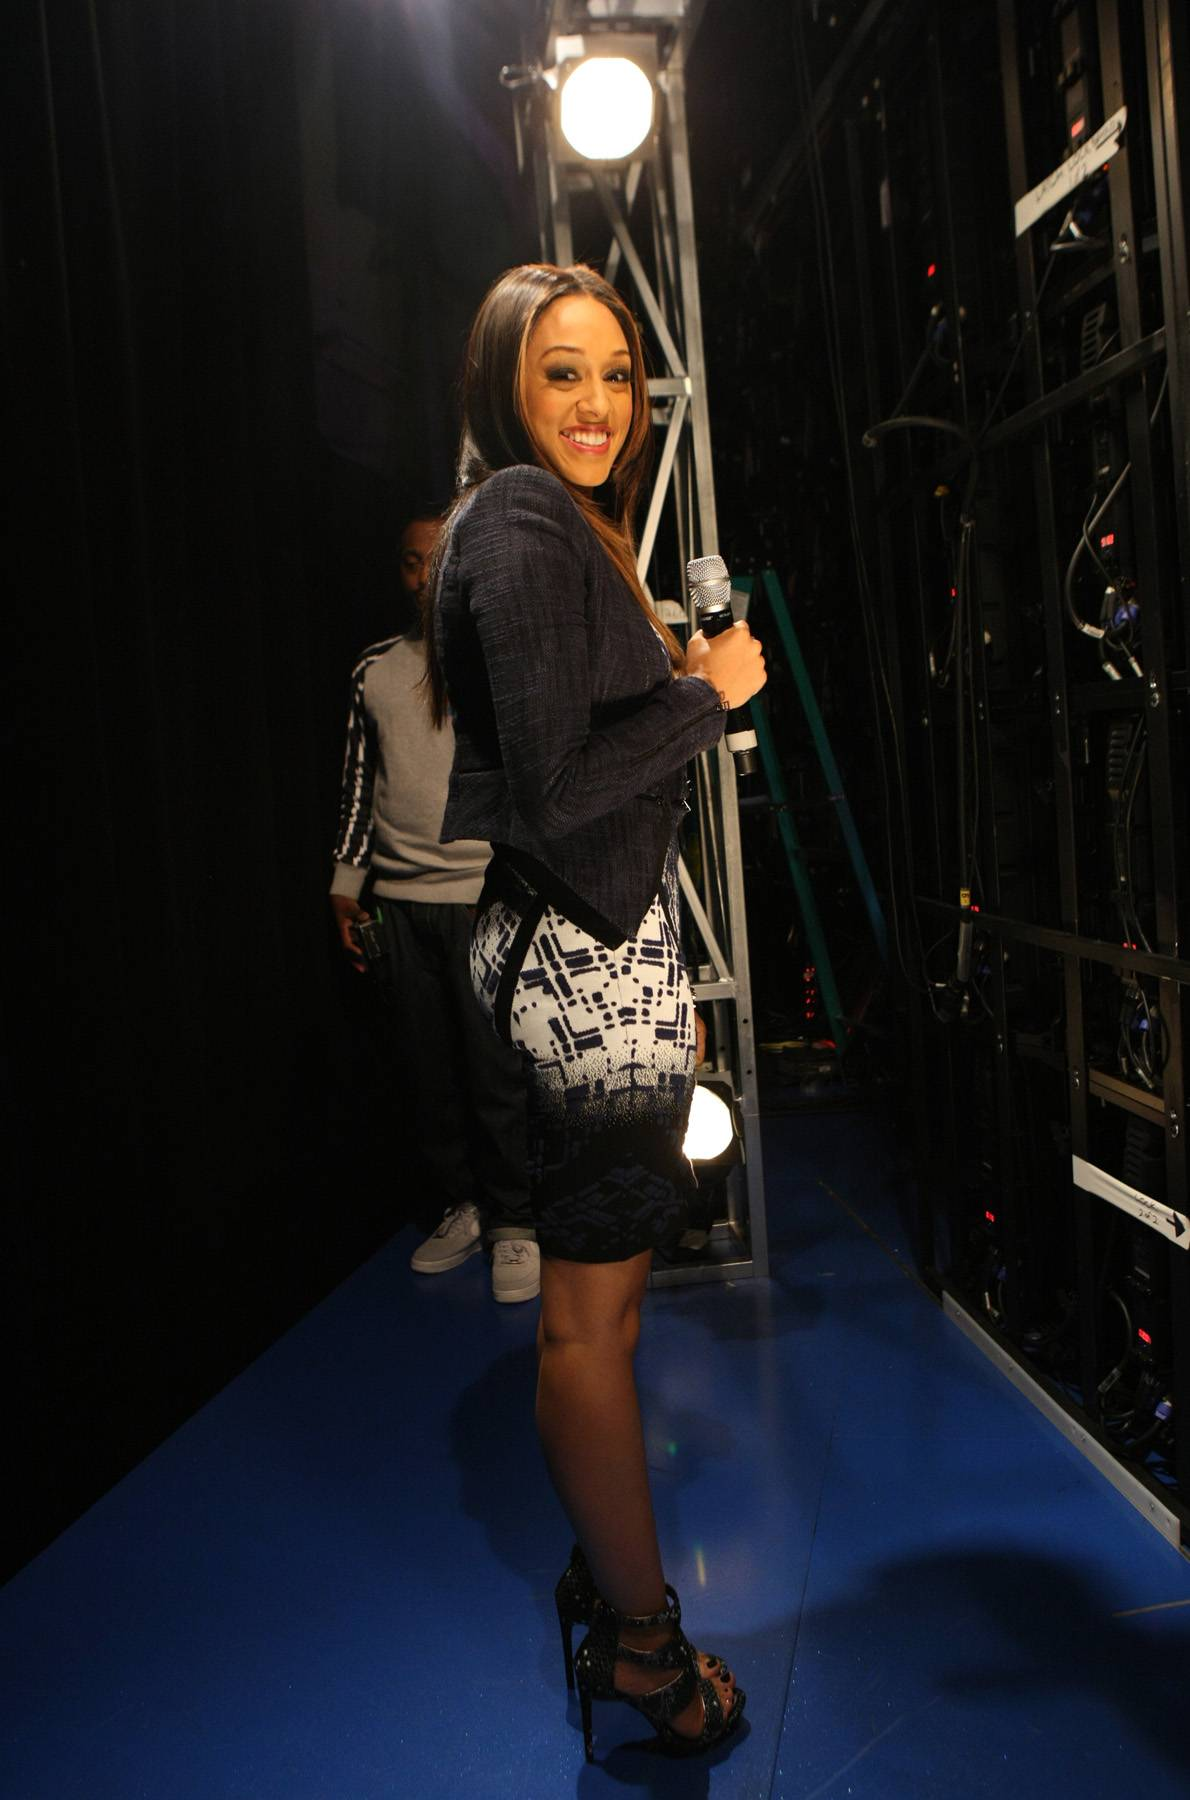 Effortless - Actress Tia Mowry gives an effortless smile while backstage at 106. (Photo: Bennett Raglin/BET/Getty Images for BET)